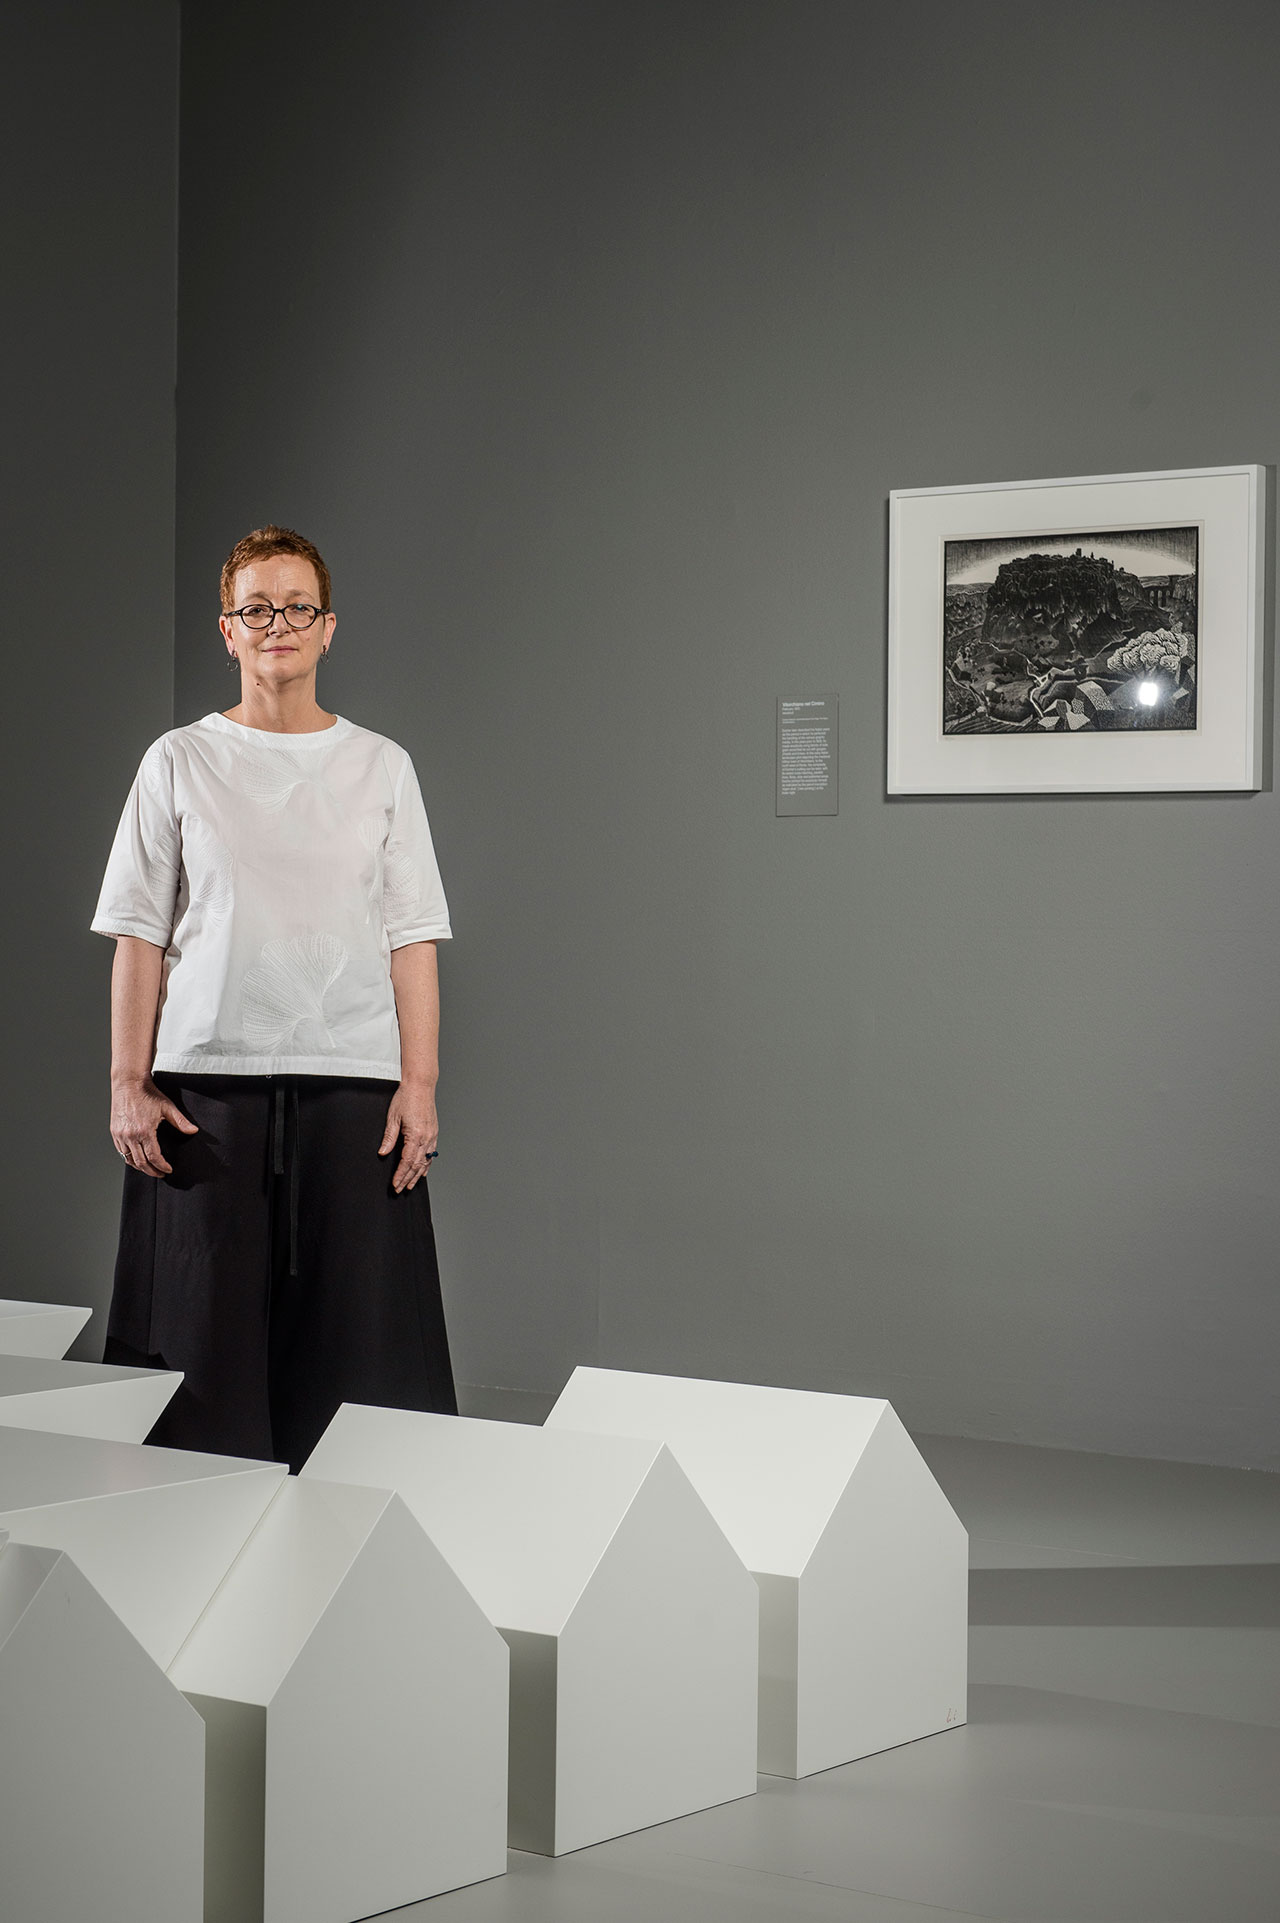 Cathy Leahy, Senior Curator, Prints and Drawings, National Gallery of Victoria. Photo by Eugene Hyland.